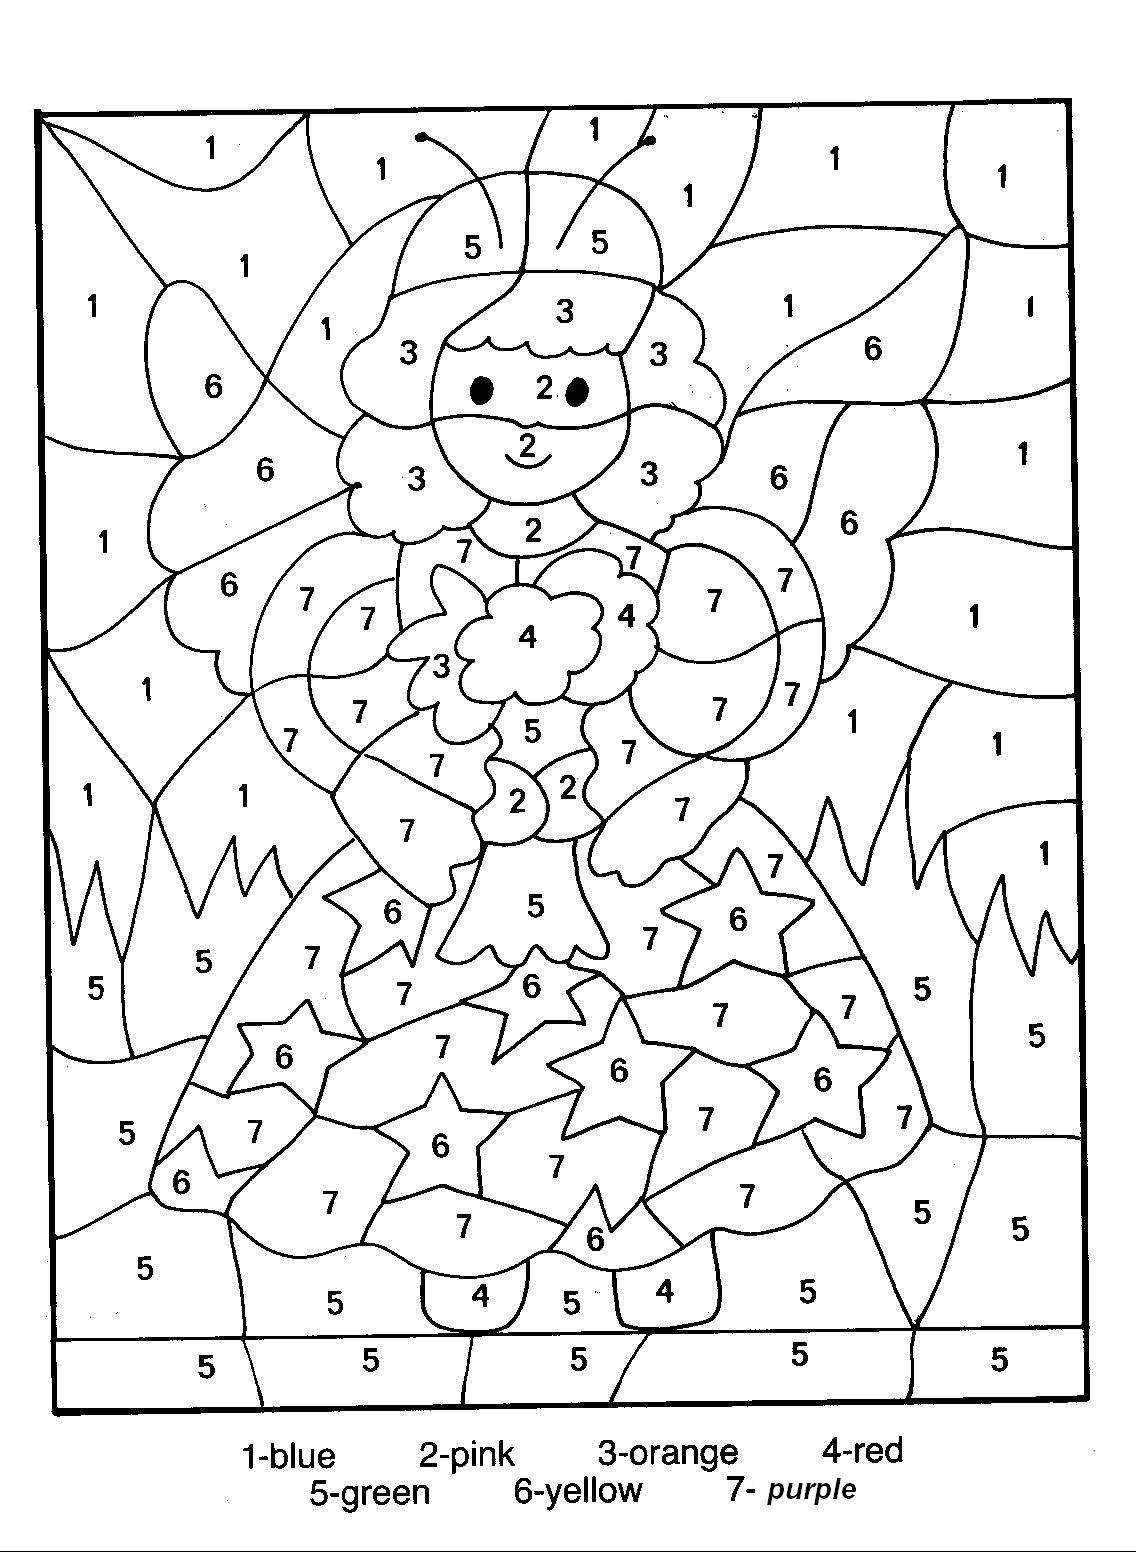 coloring websites adult coloring pages flowers to download and print for free websites coloring